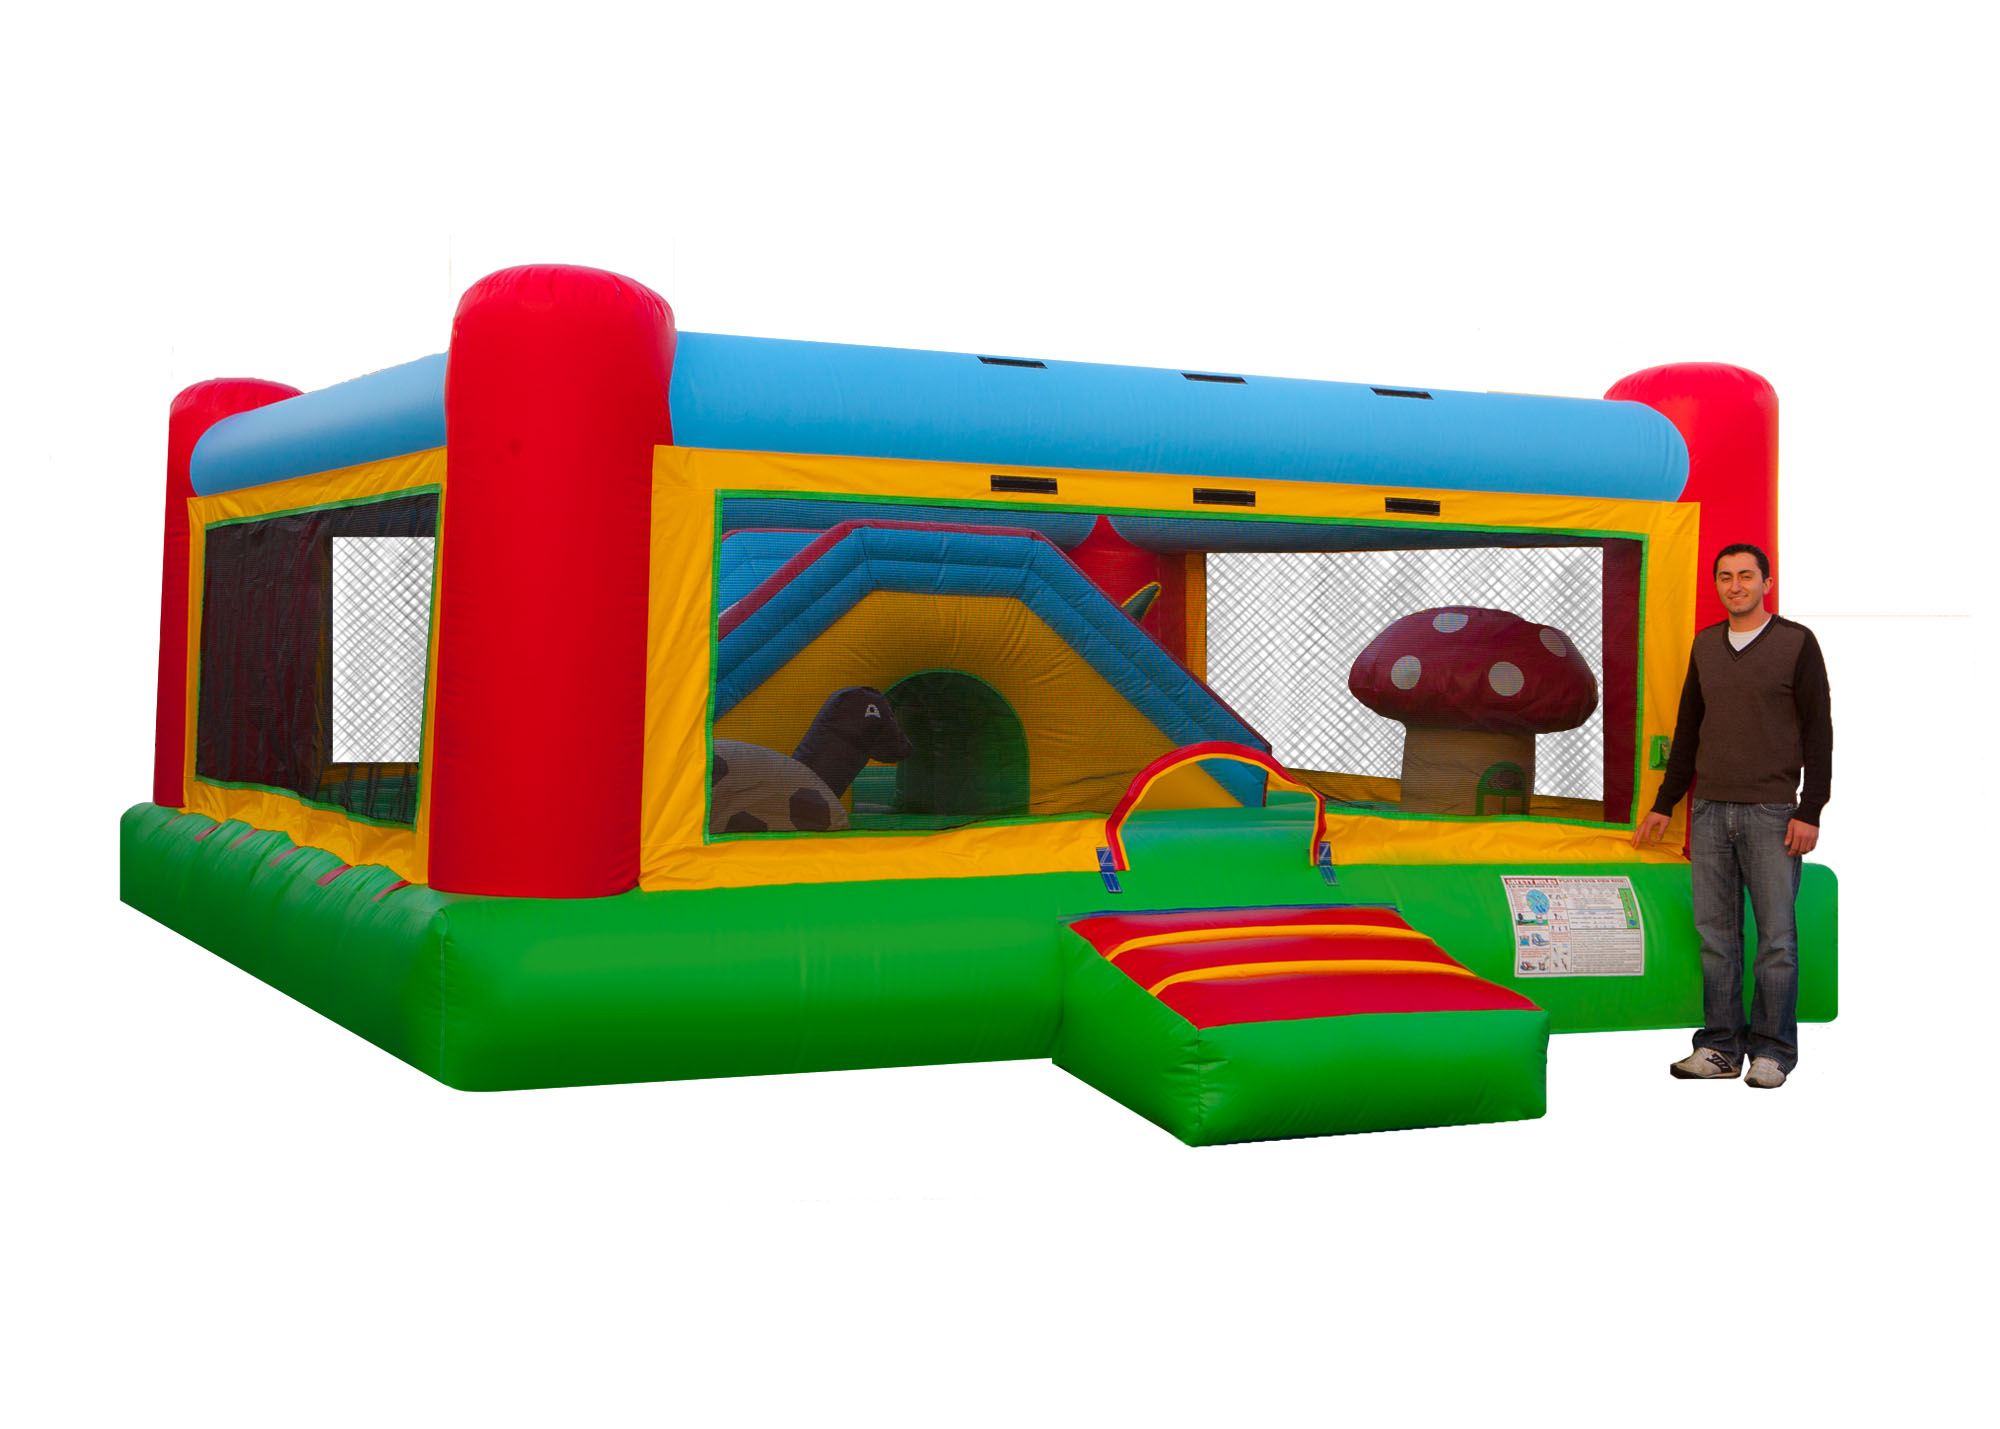 Milford CT Bounce House bo Rentals from Kids on the Moon